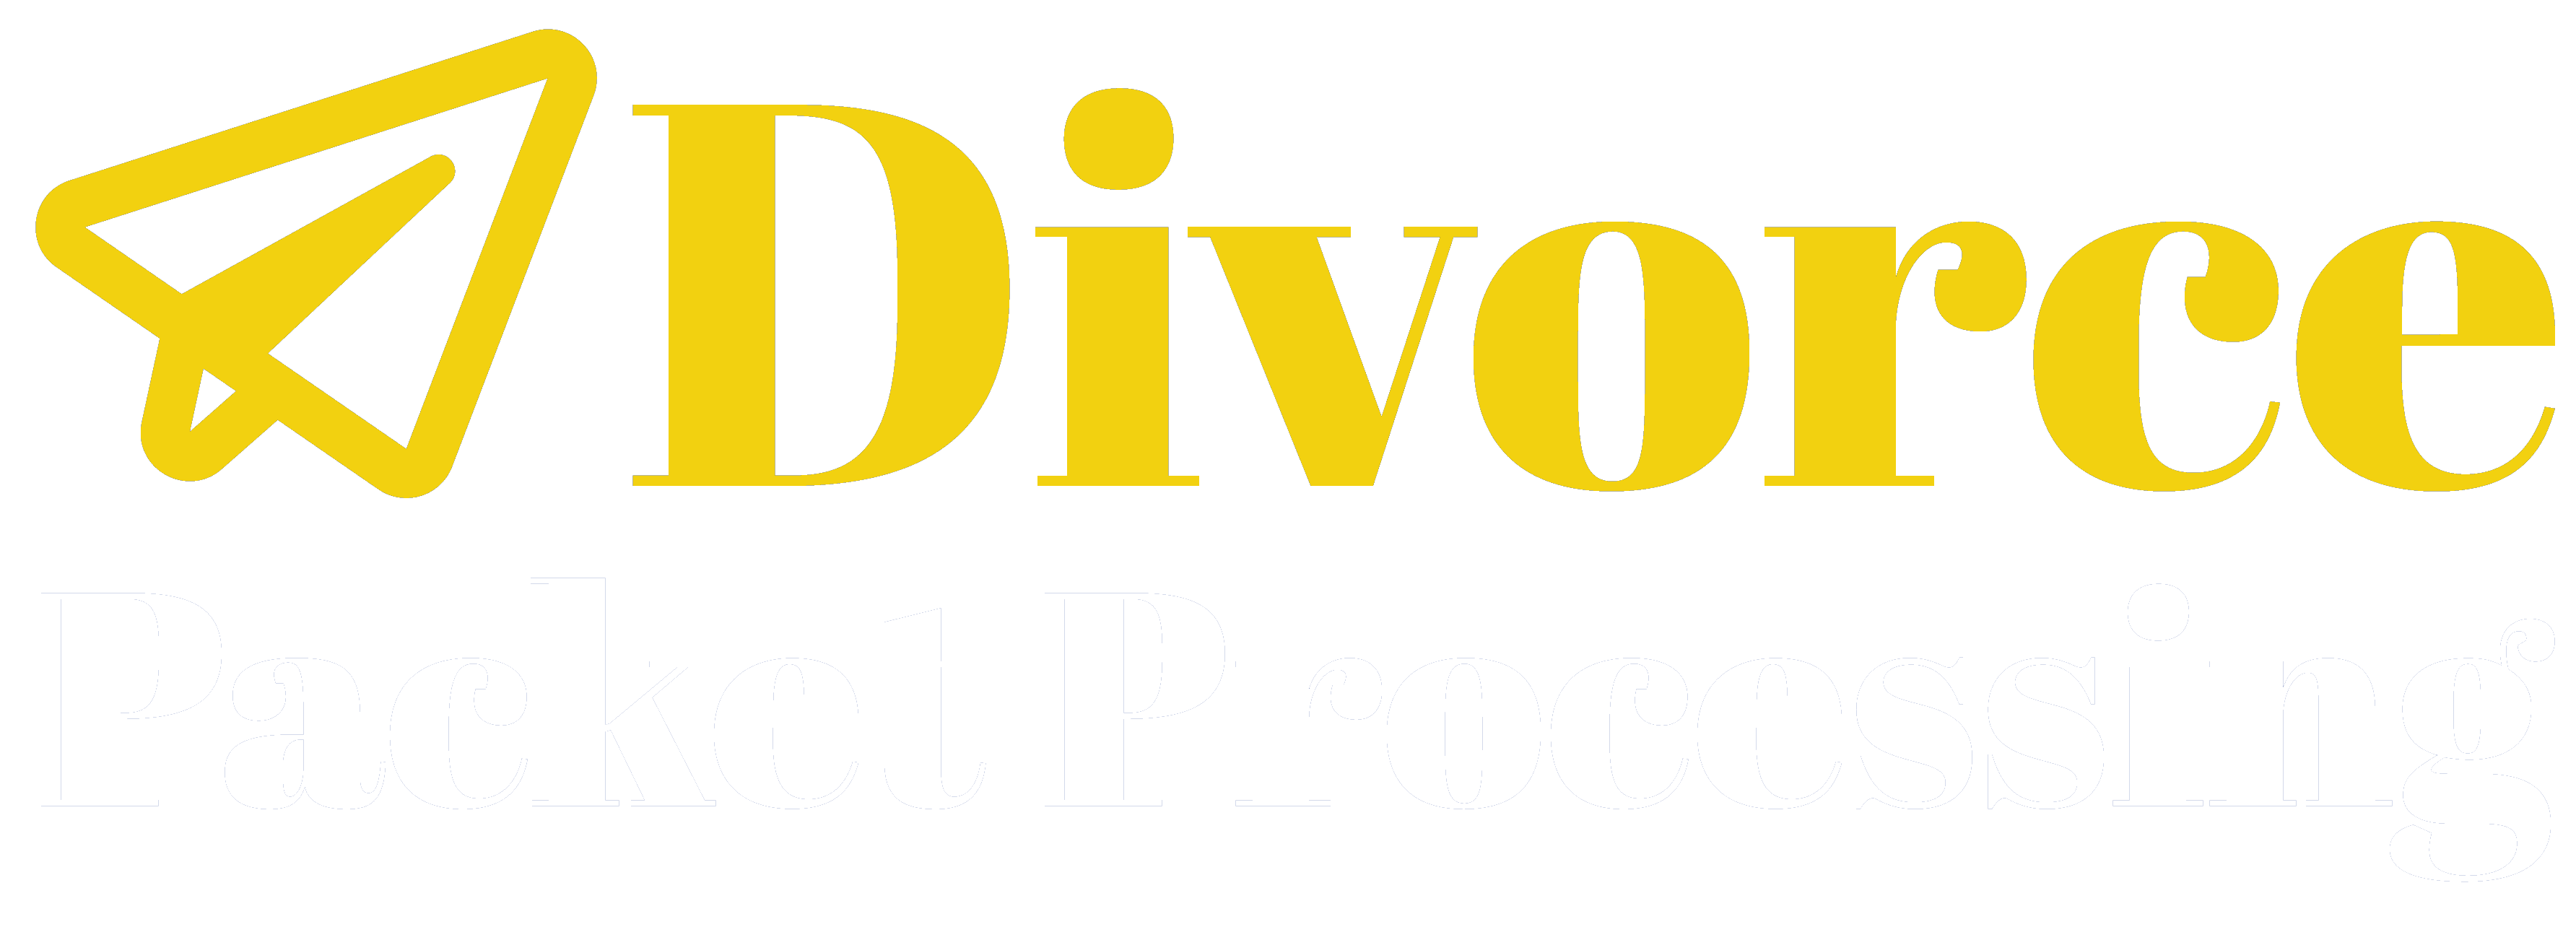 Divorce Packets Processing